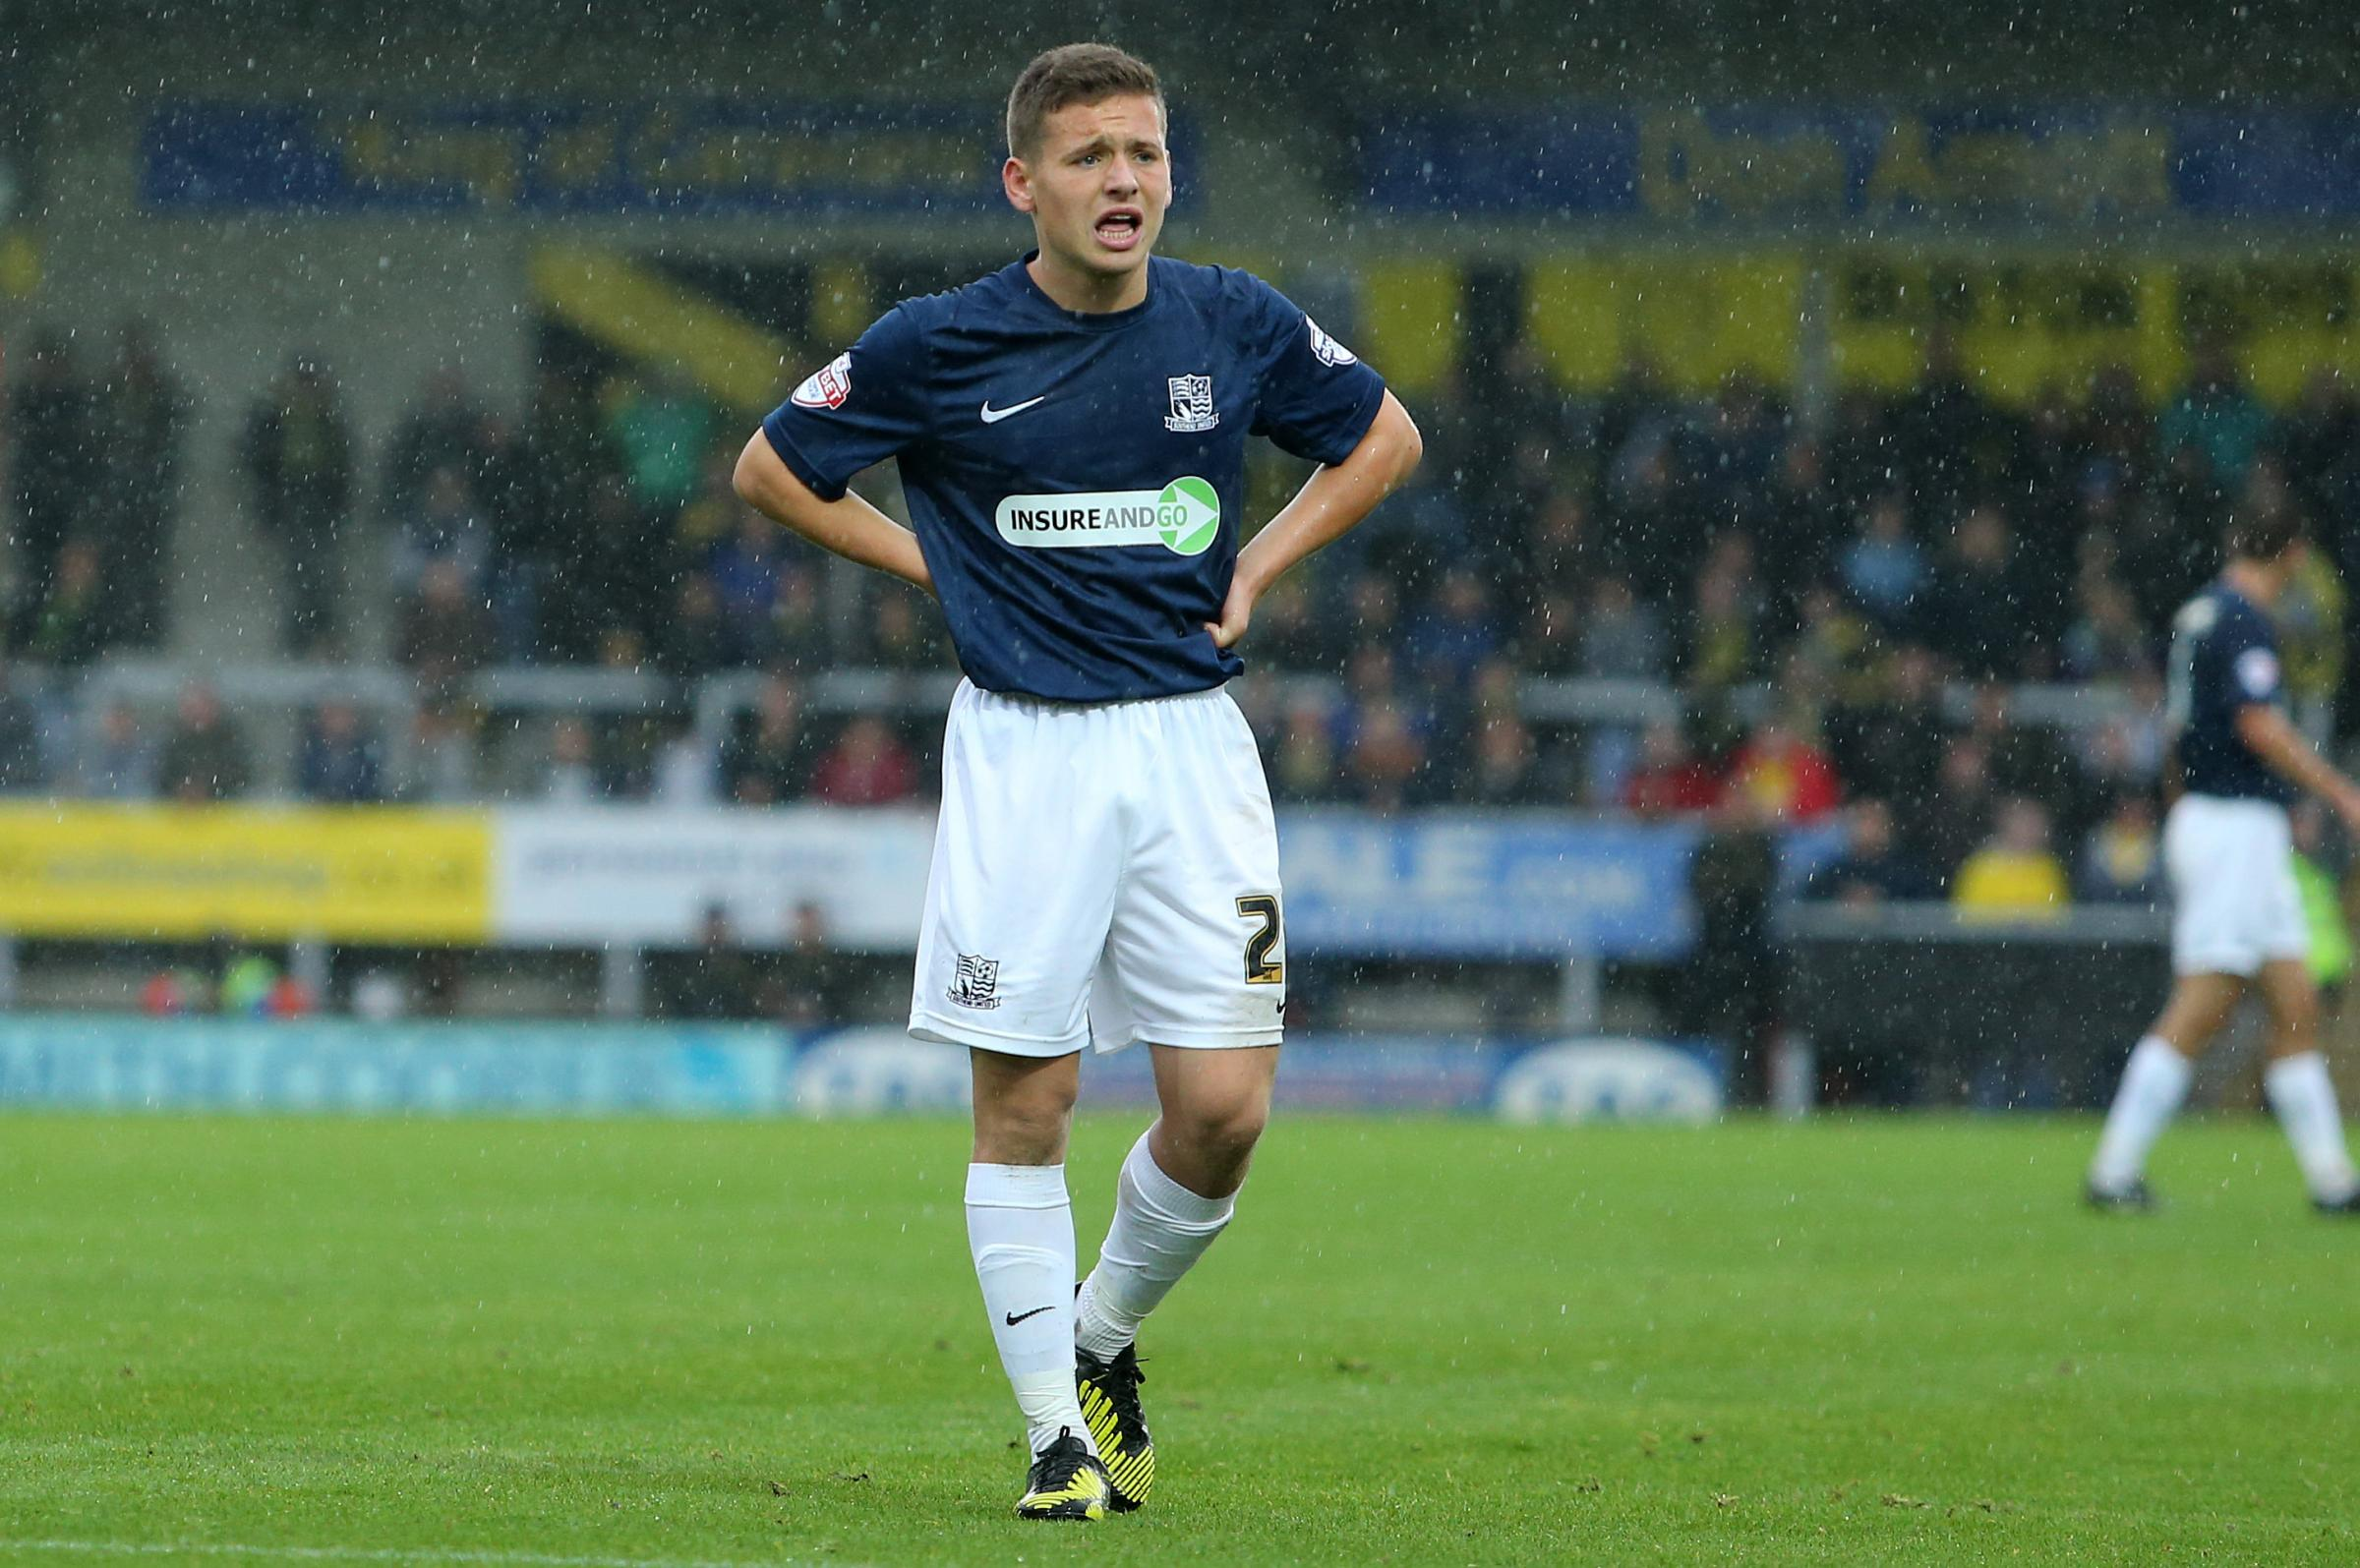 Jack Payne - wasted a good chance to score for Southend United